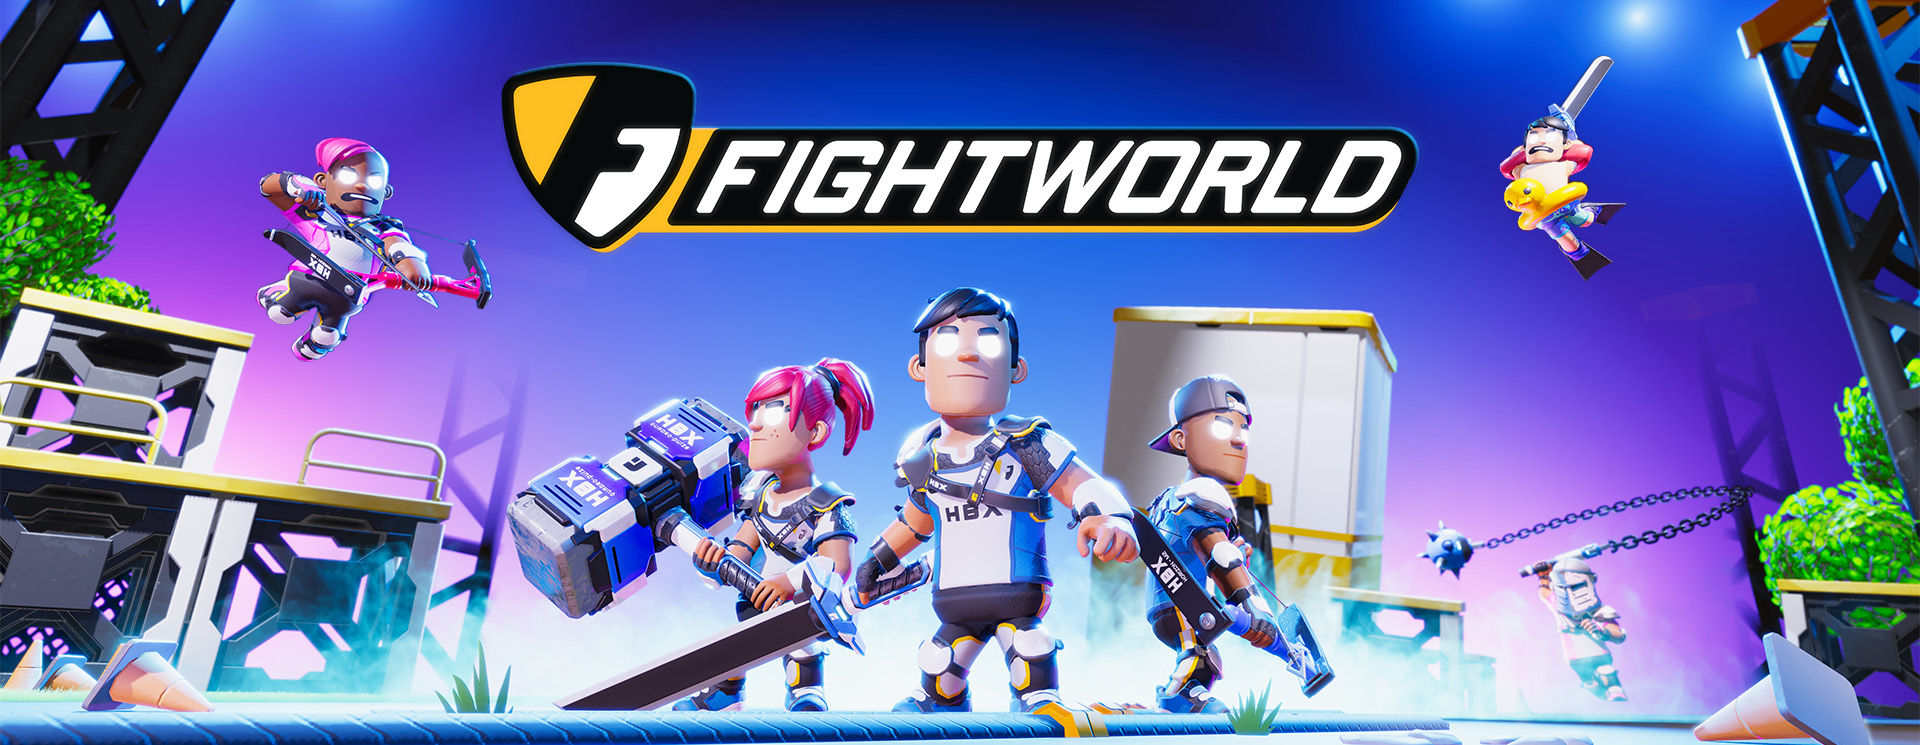 Fightworld_Poster_Wide